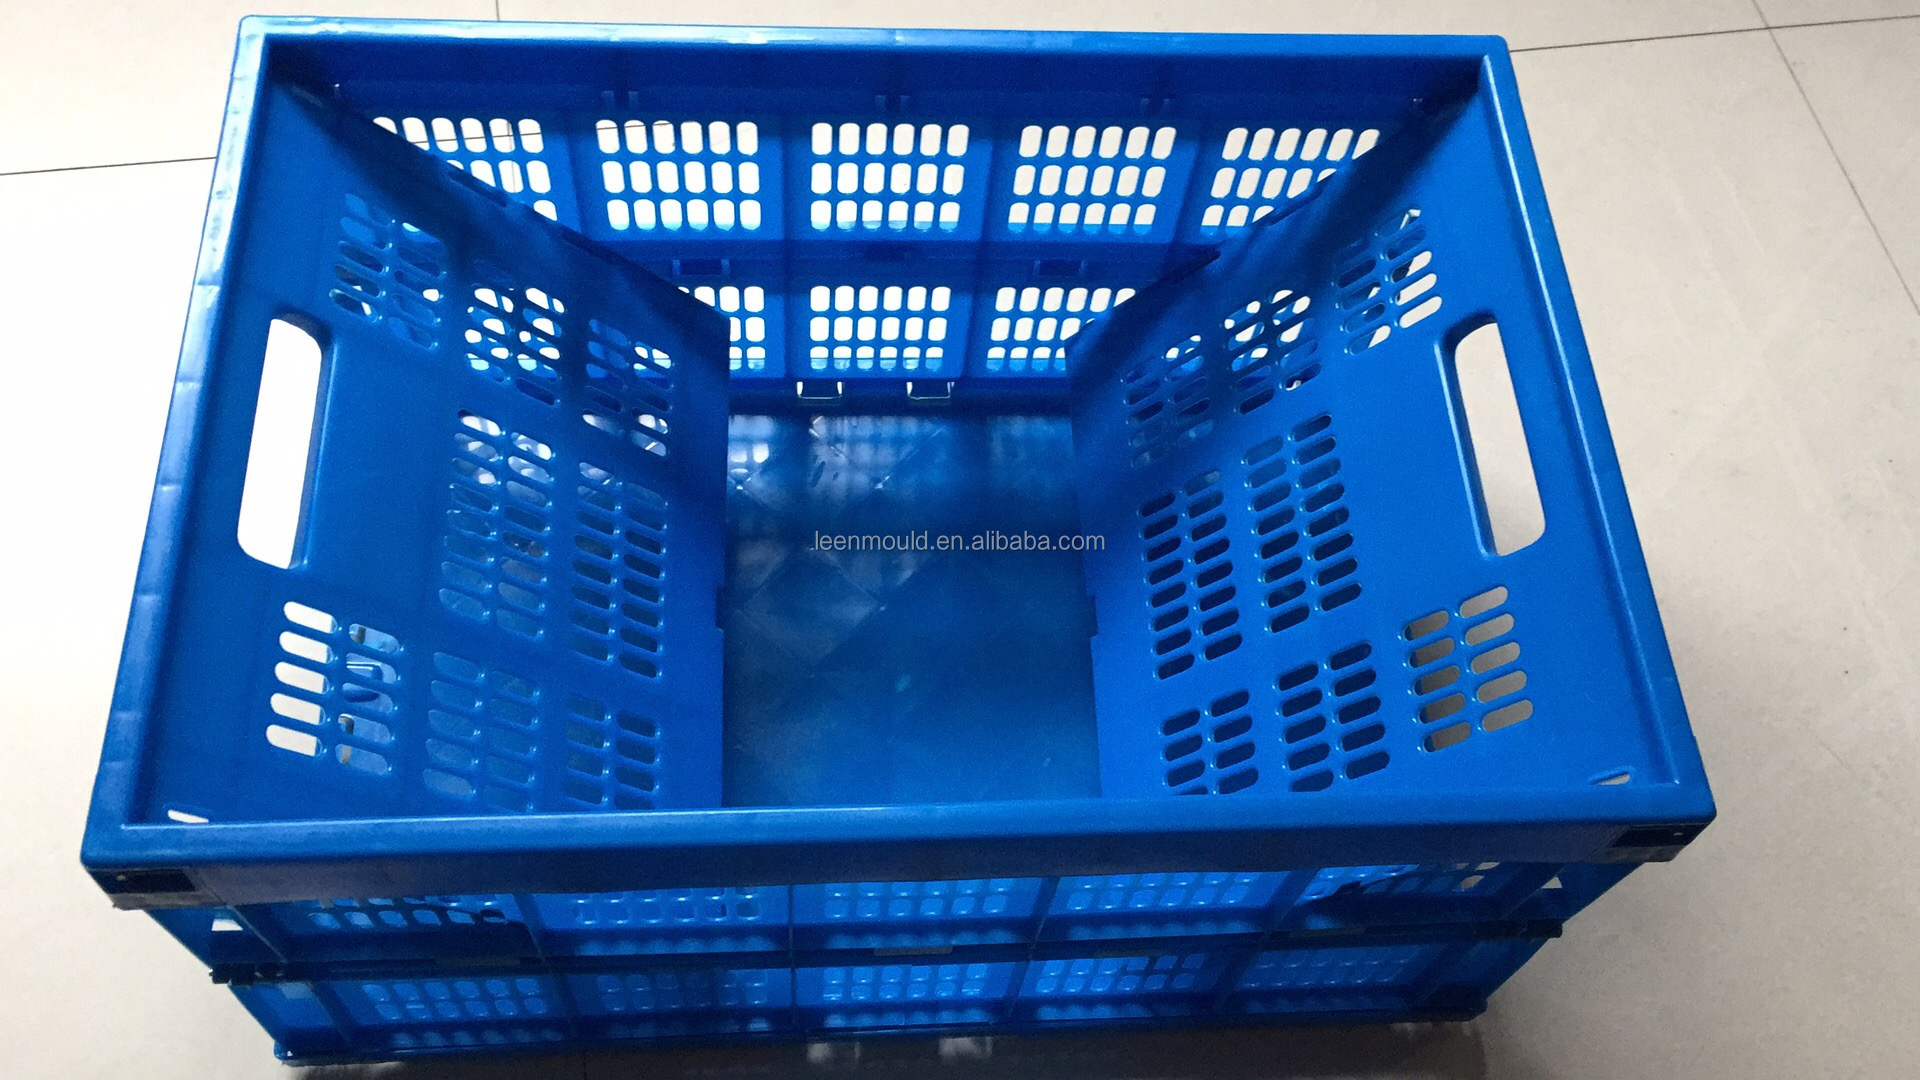 Taizhou Plastic Foldable Box/Crate/Container,Sale Fold up Plastic Boxes, Folding Turnover Box